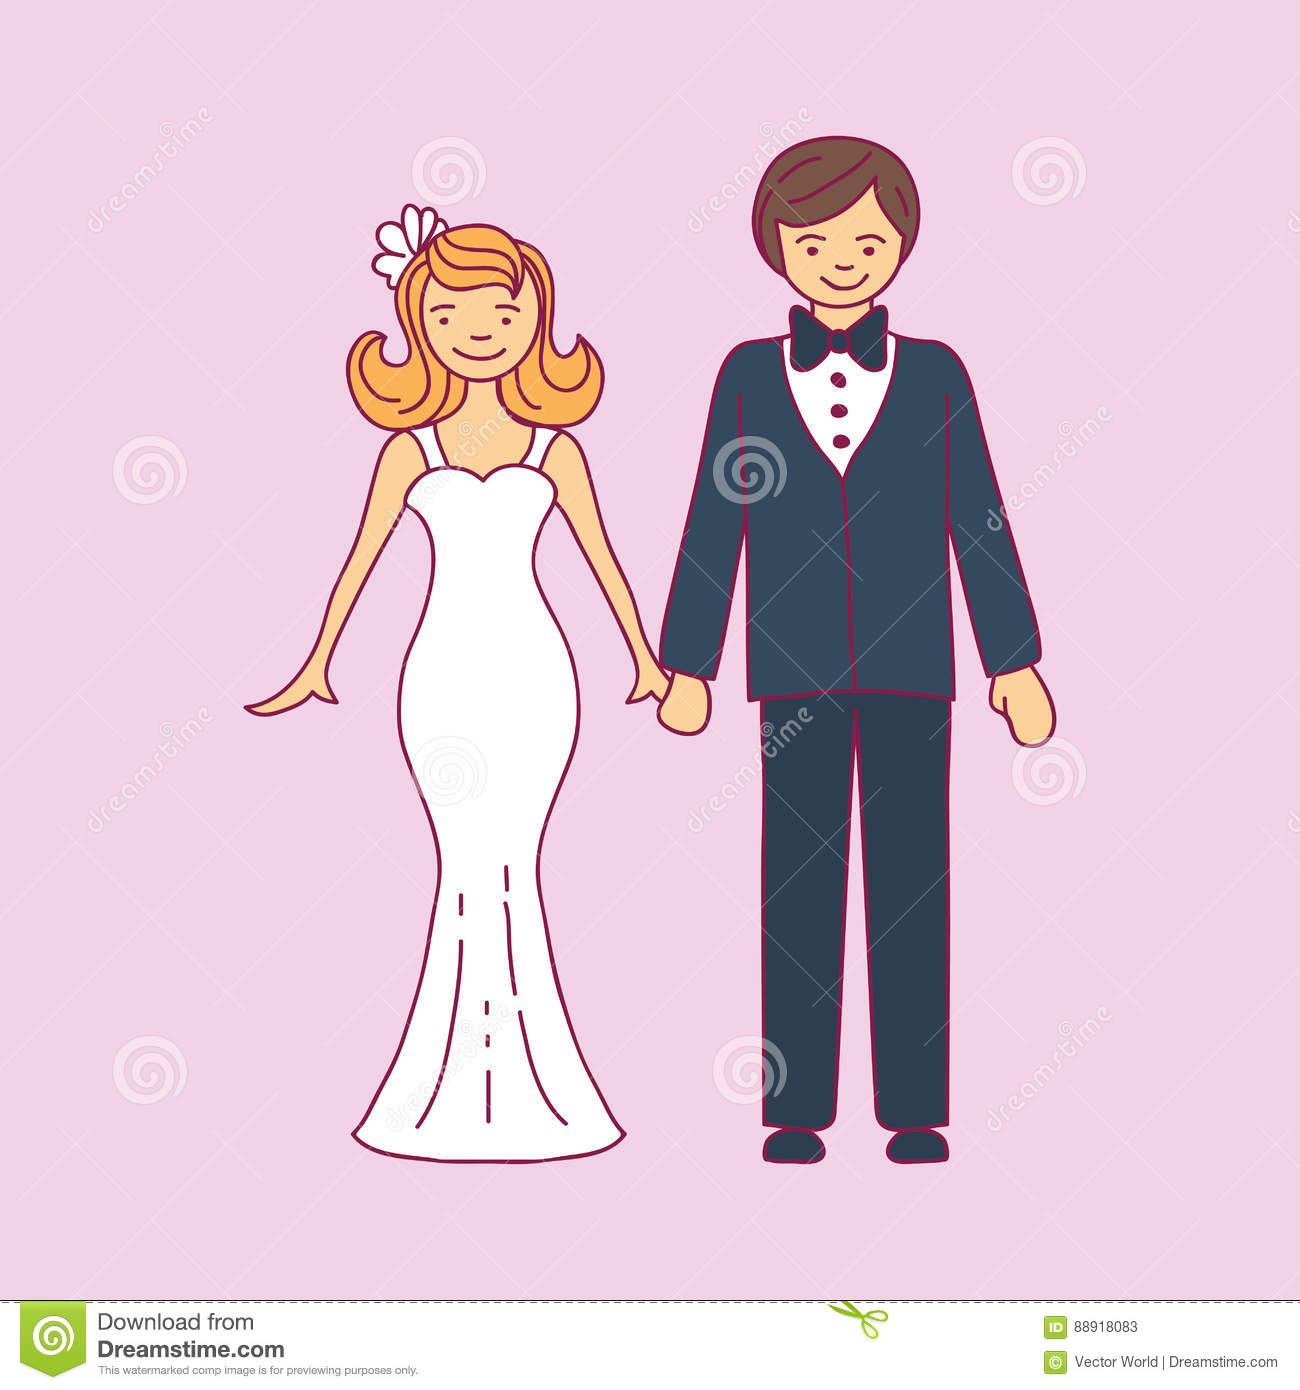 Wedding Couple Character: The Happy Bride And Groom Vector ...